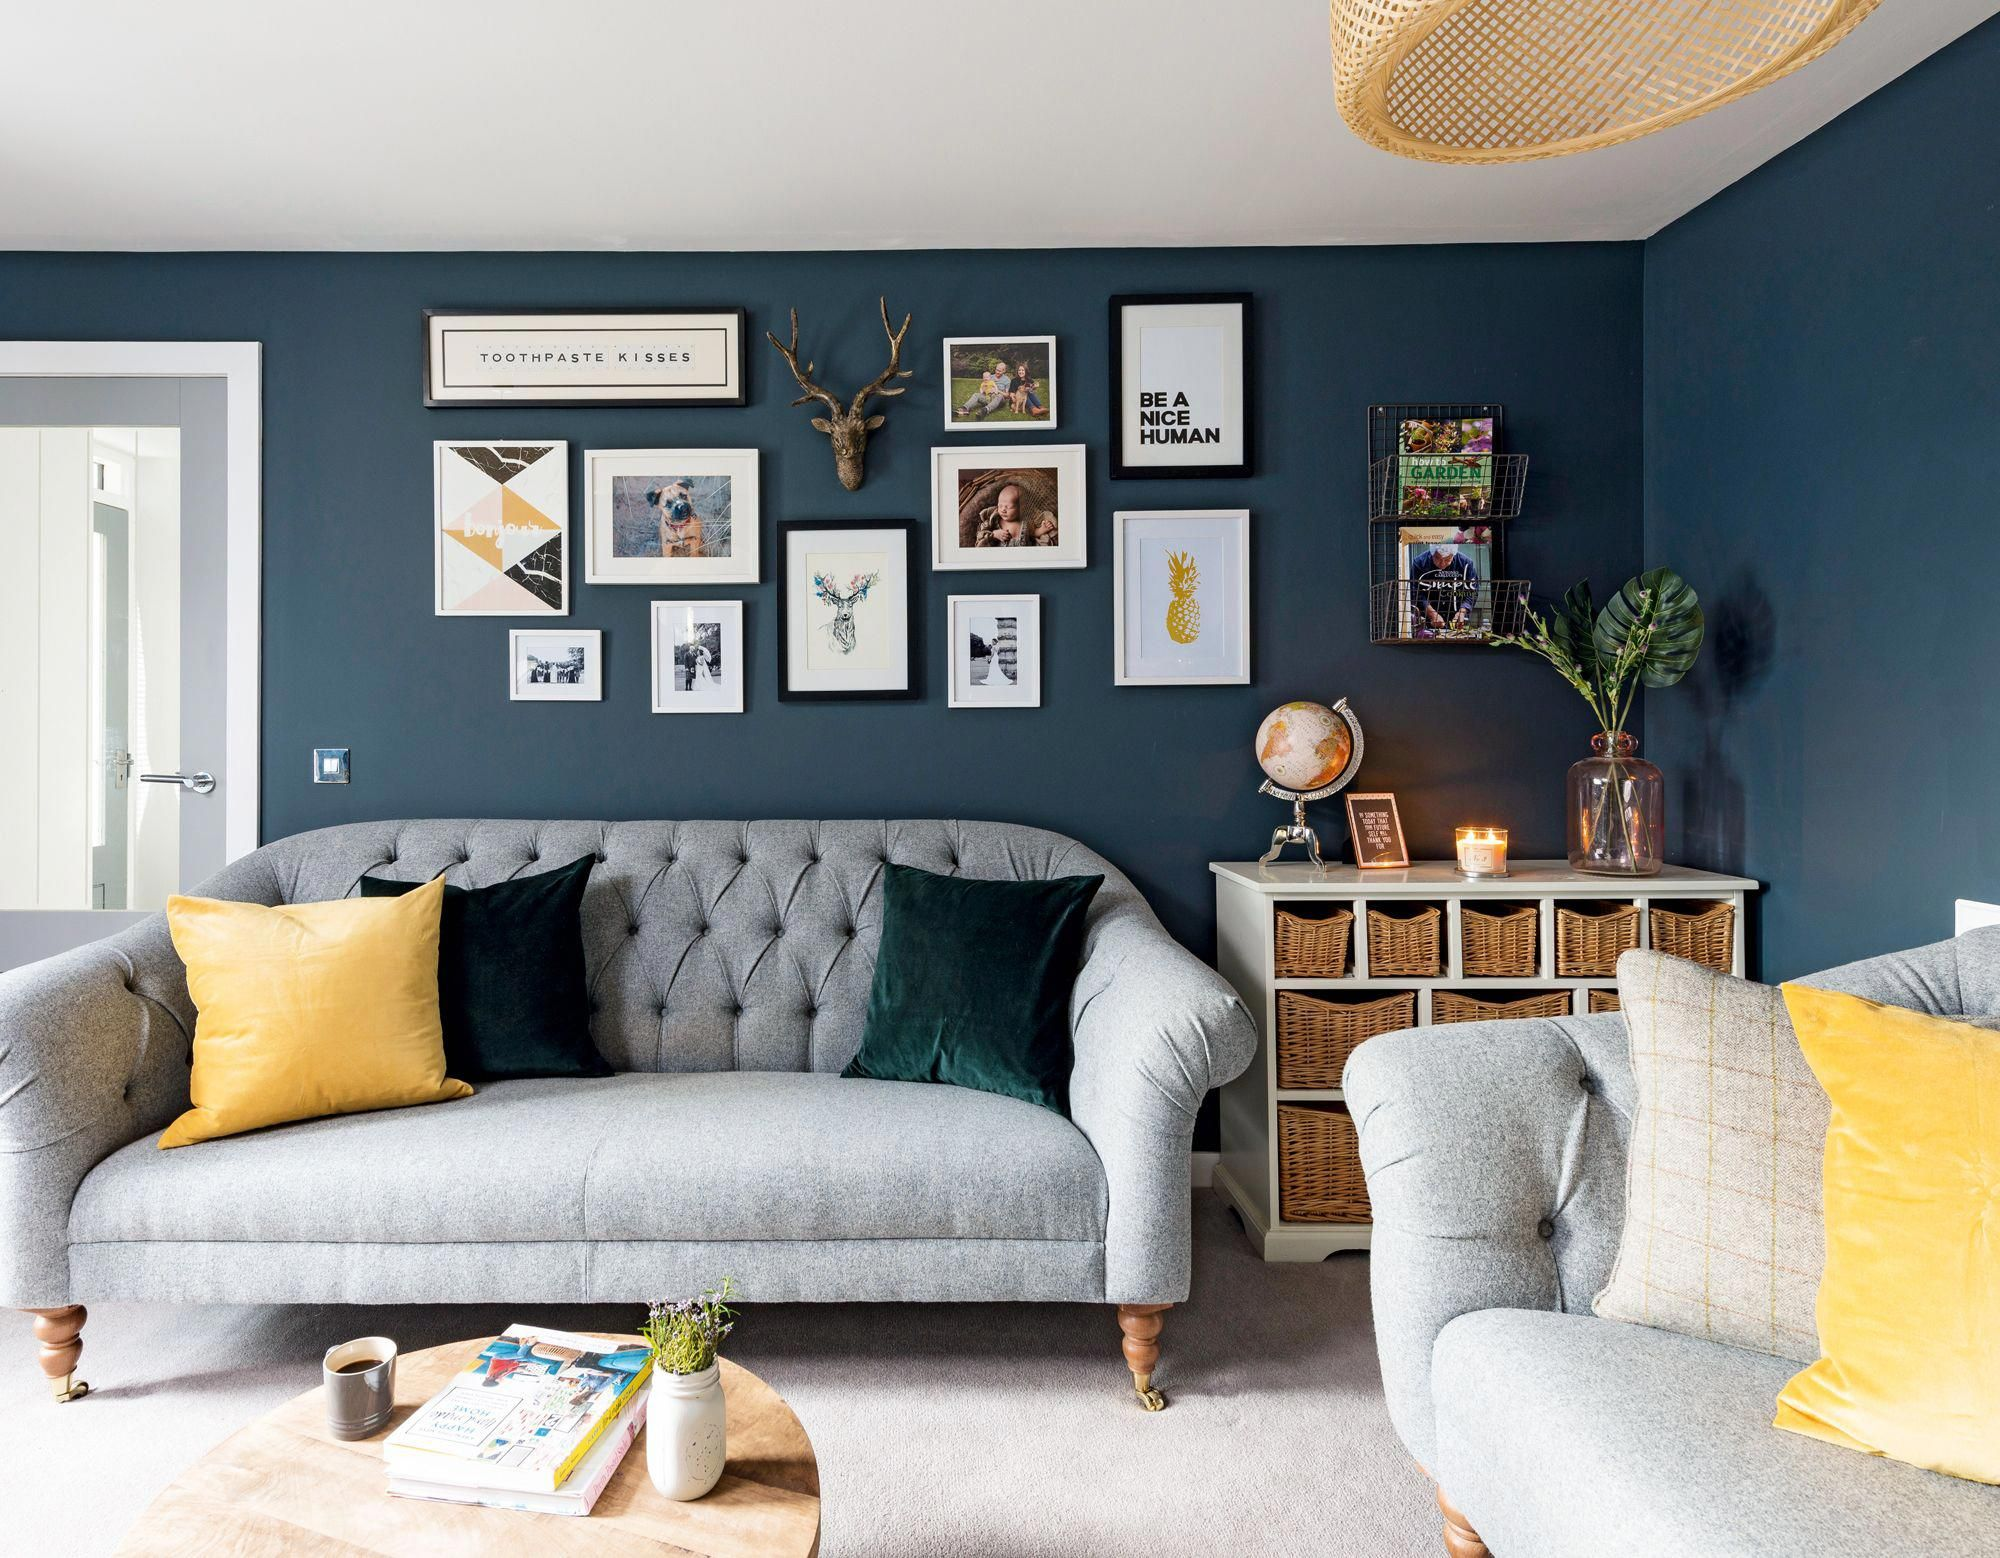 a dark navy living room with yellow accents and a grey